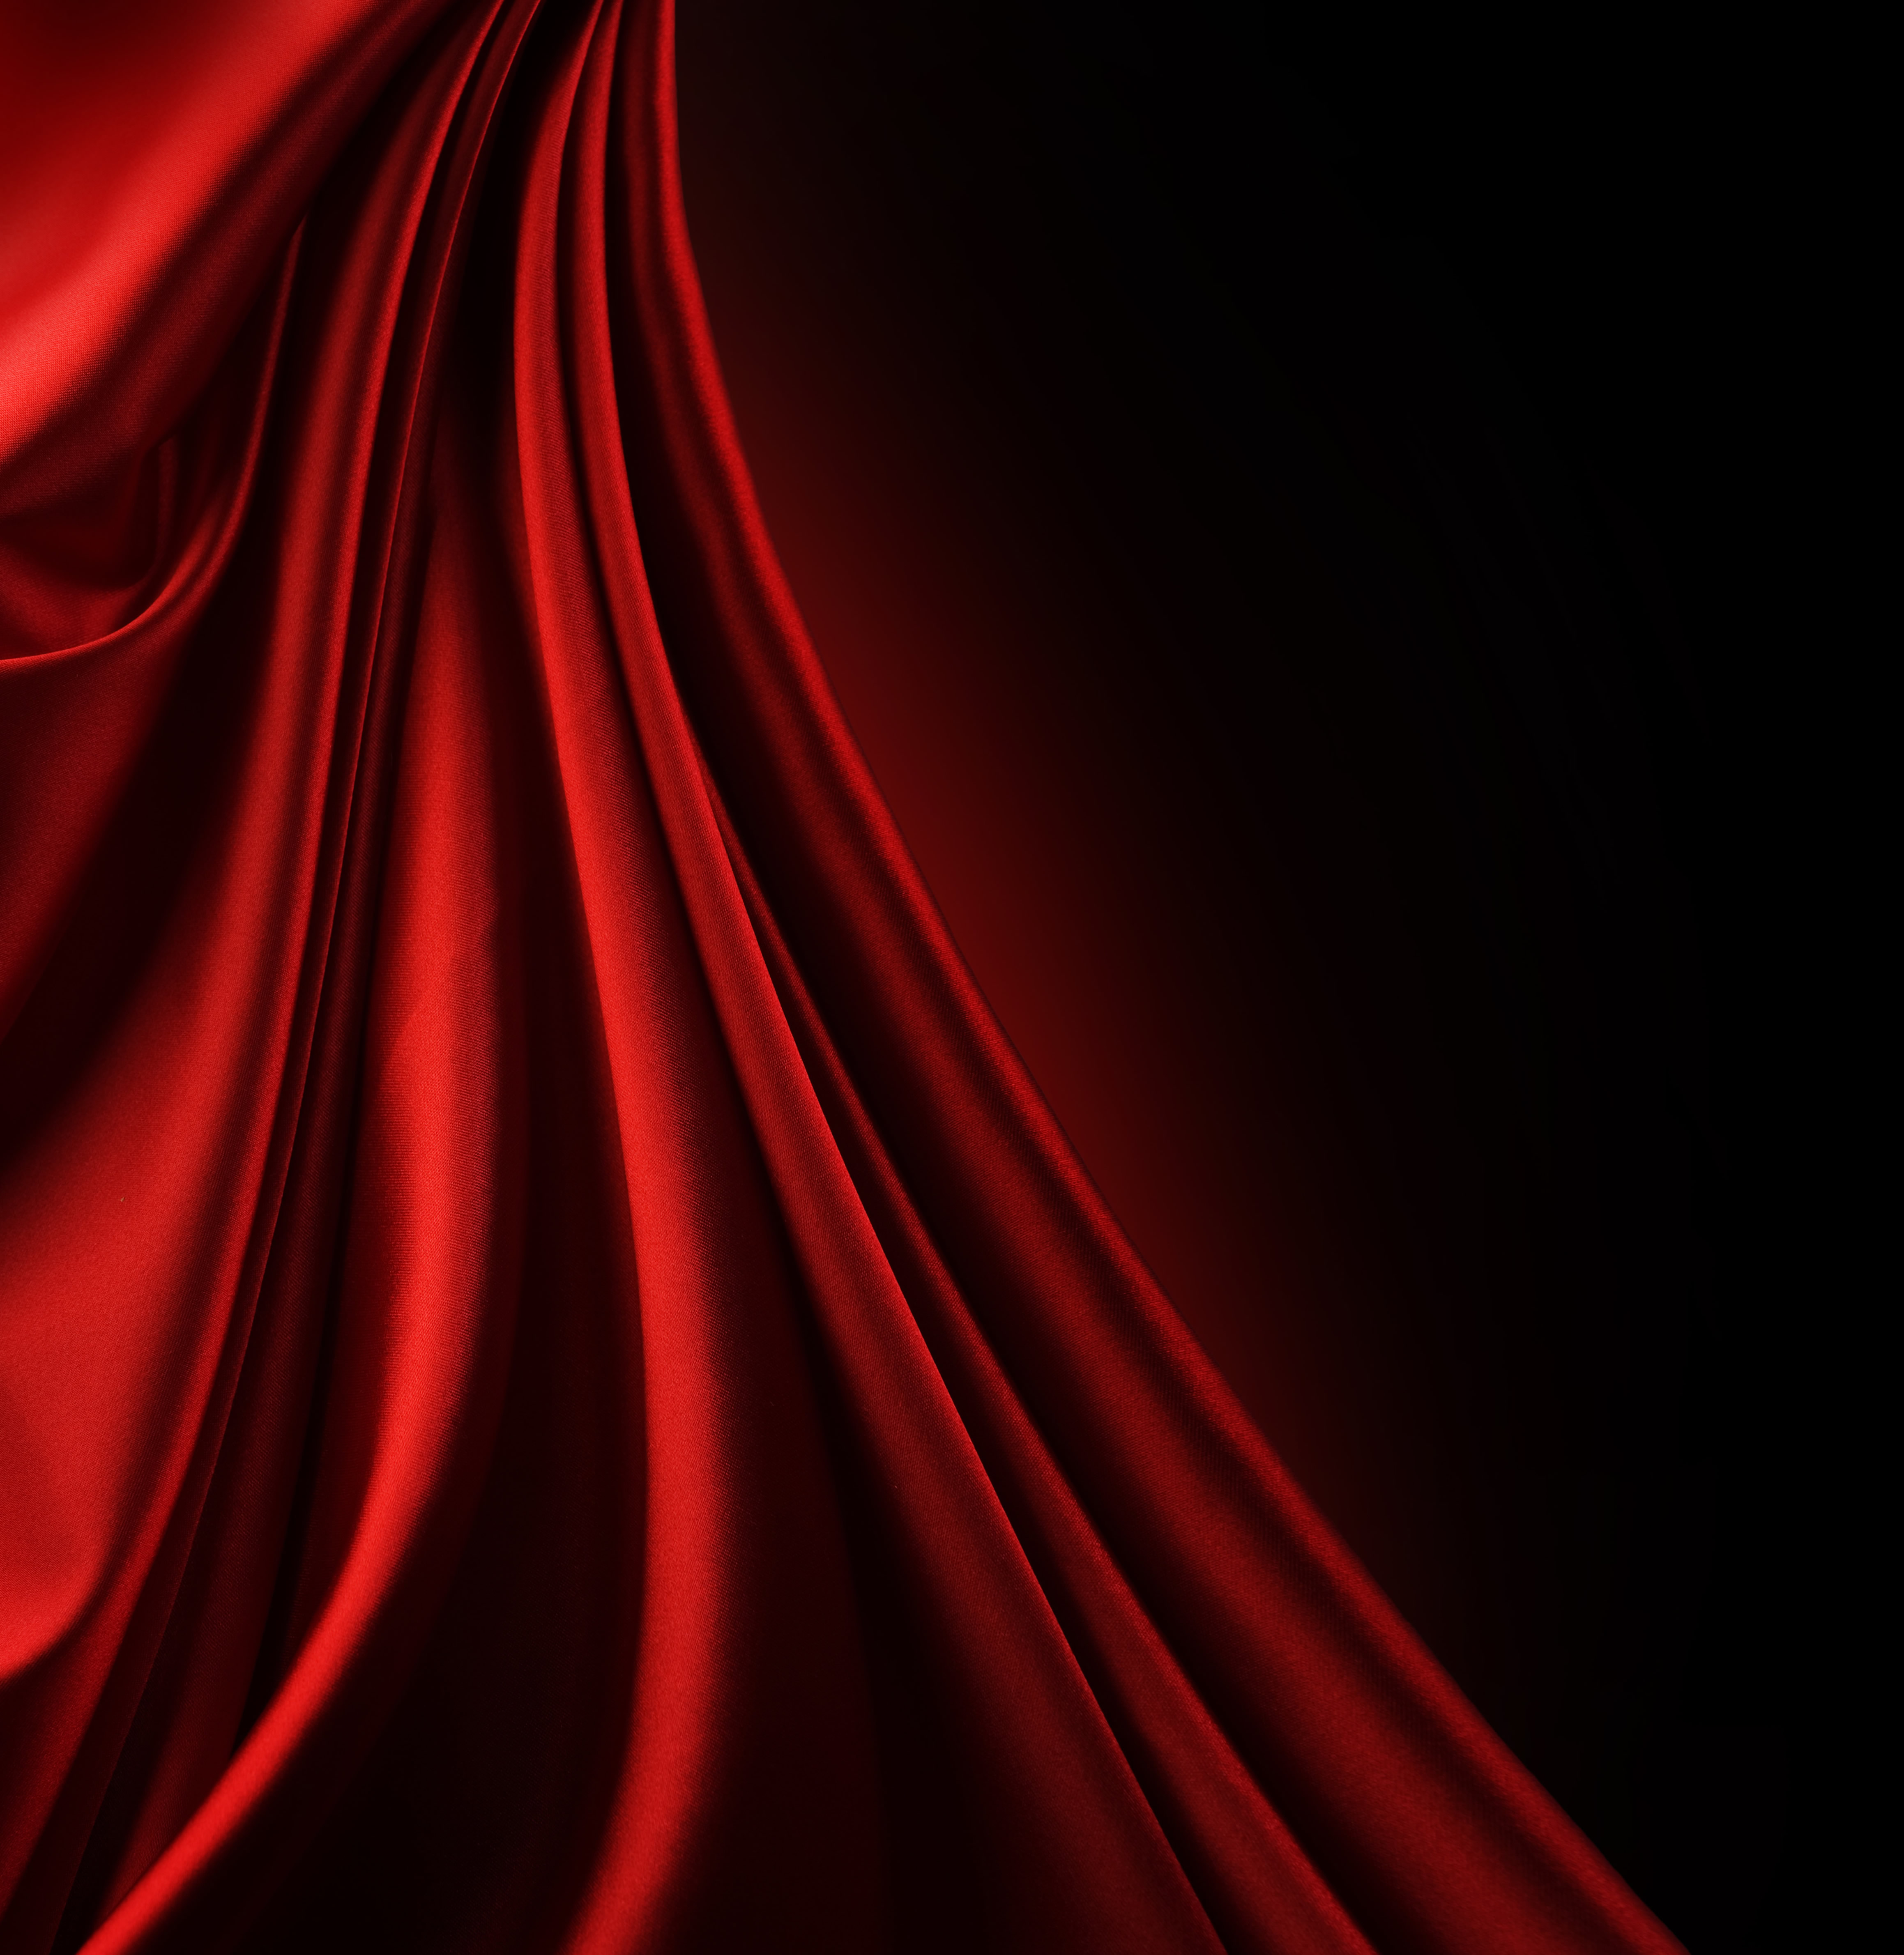 red fabric cloth background, silk, download photo, background, texture, red satin texture background